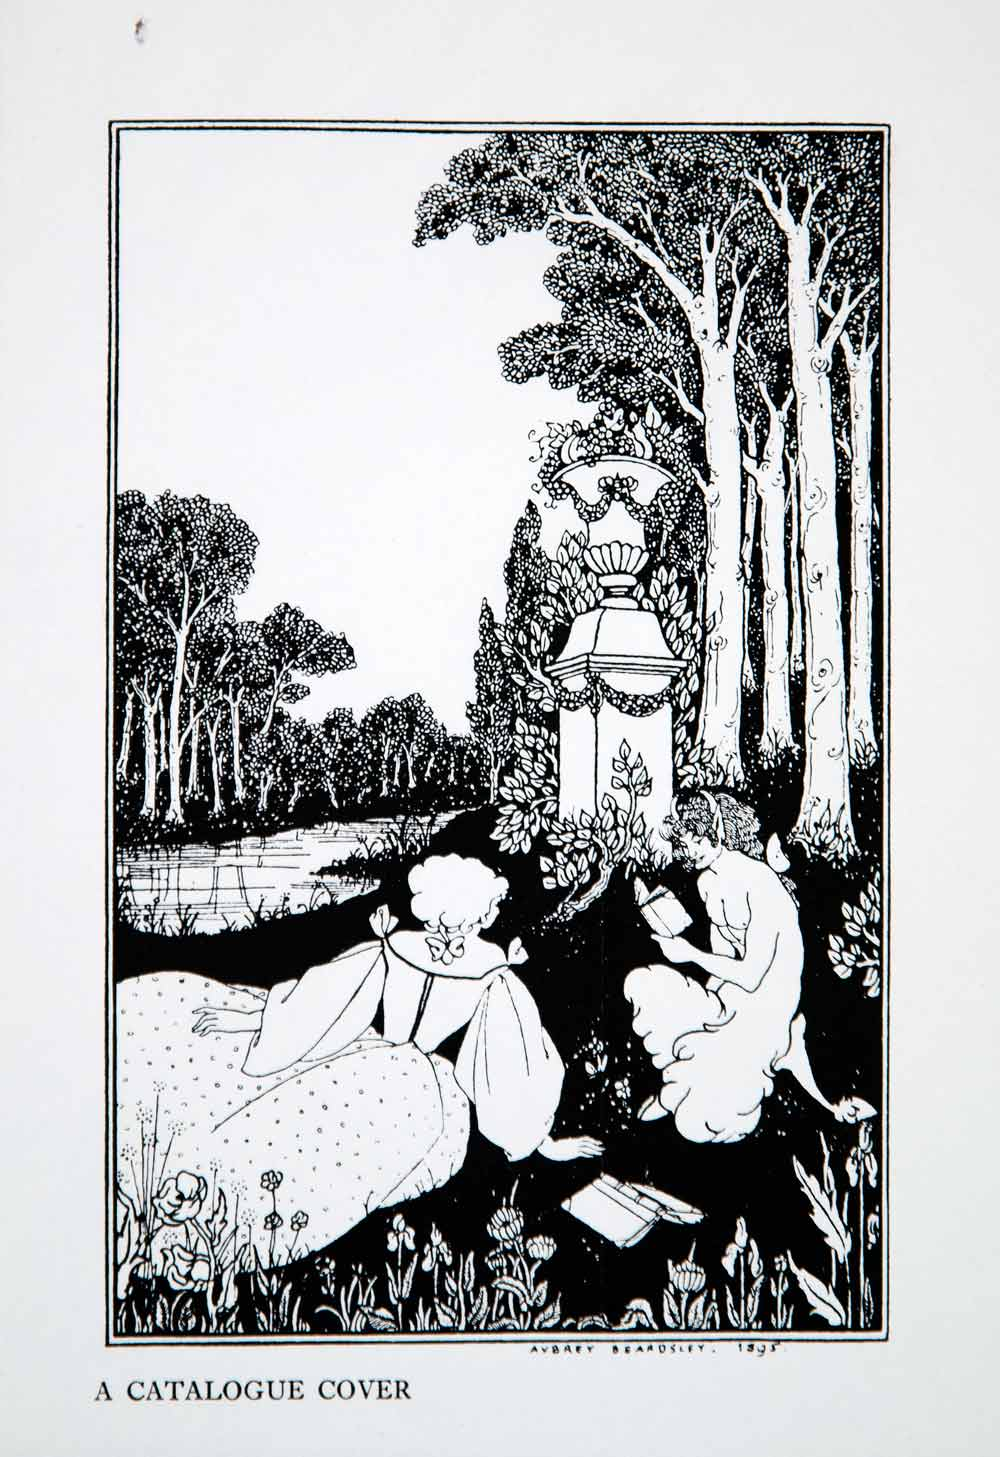 beardsley women Some aubrey beardsley art and illustration from le morte d'arthur, salomé, the yellow book, and elsewhere.